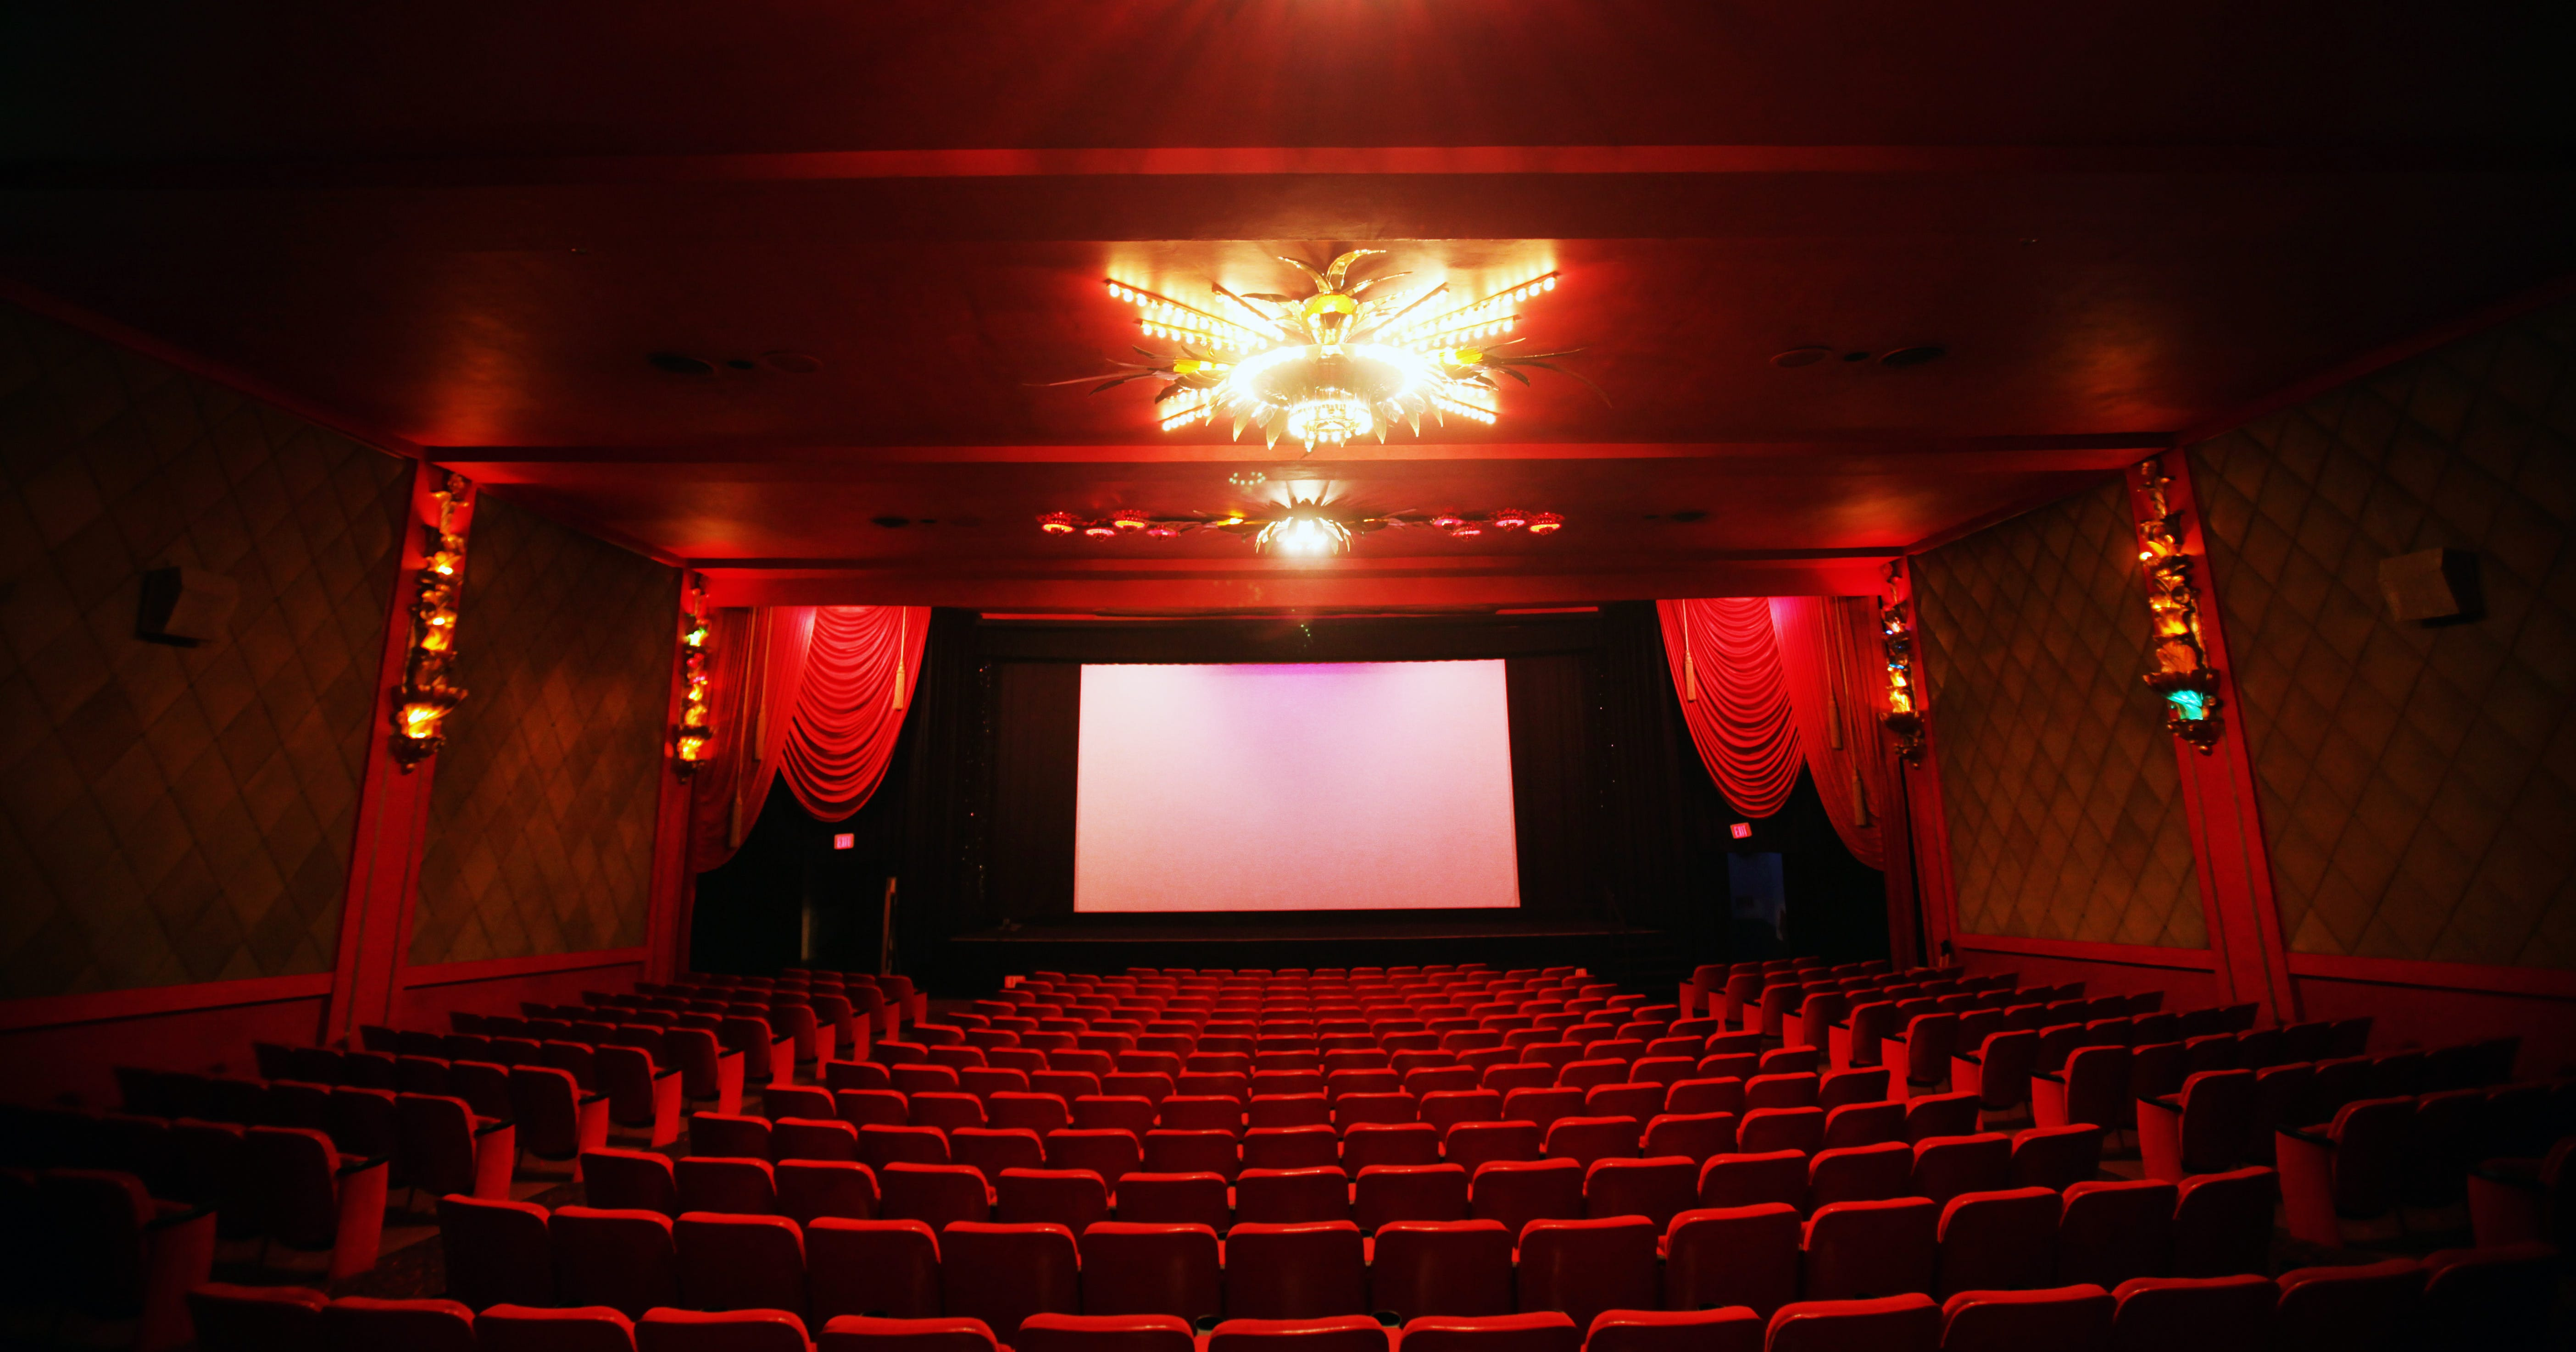 Best Movie Theaters With Beds  Imax  Cool Experiences